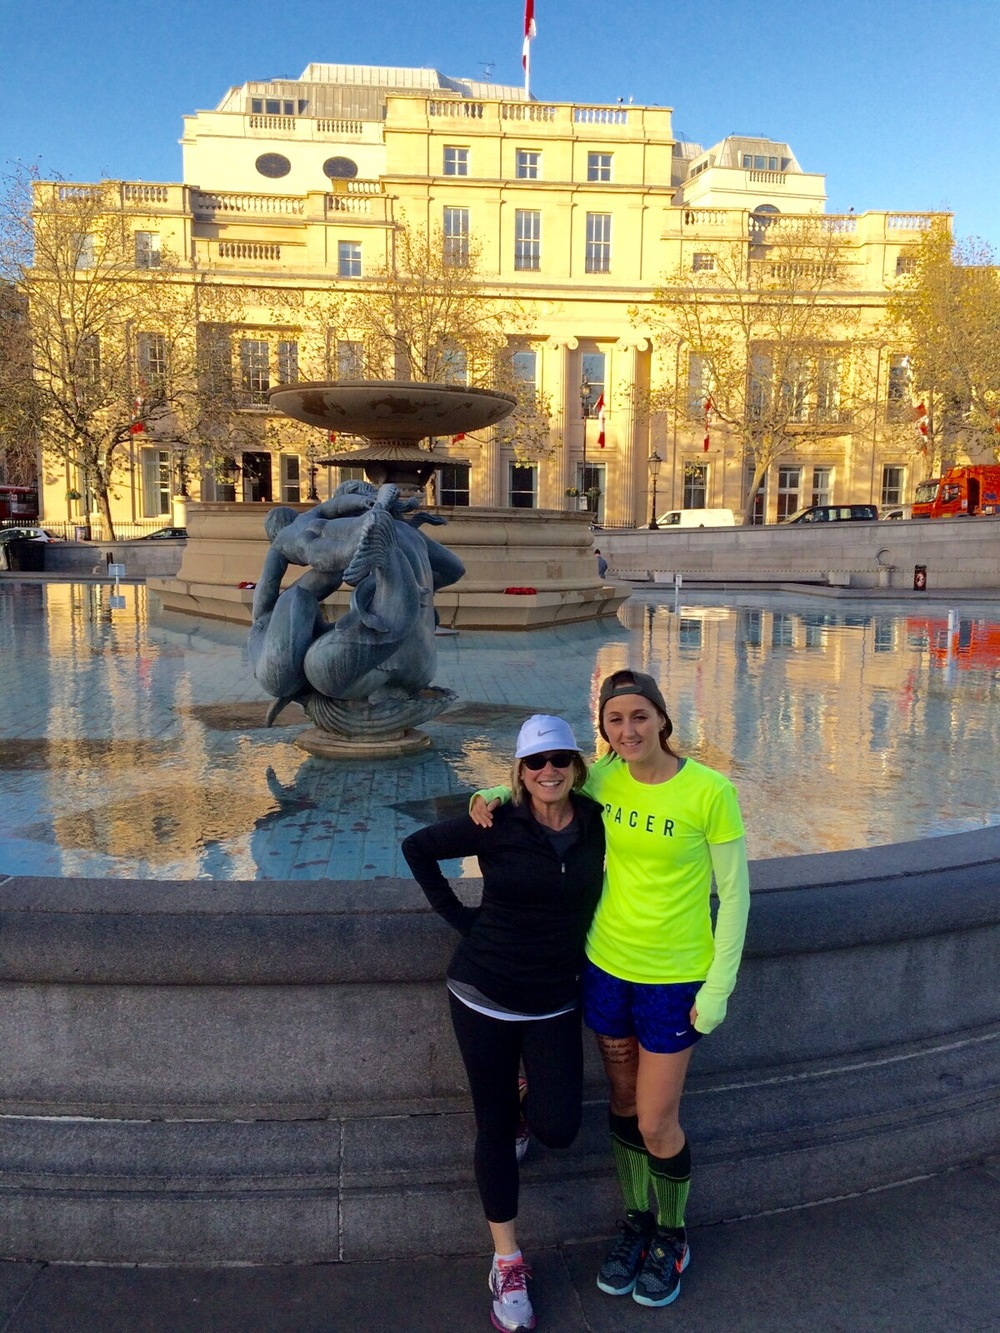 With Nike coach Maggie in Trafalgar Square. Still standing and smiling after my hamstring strain.